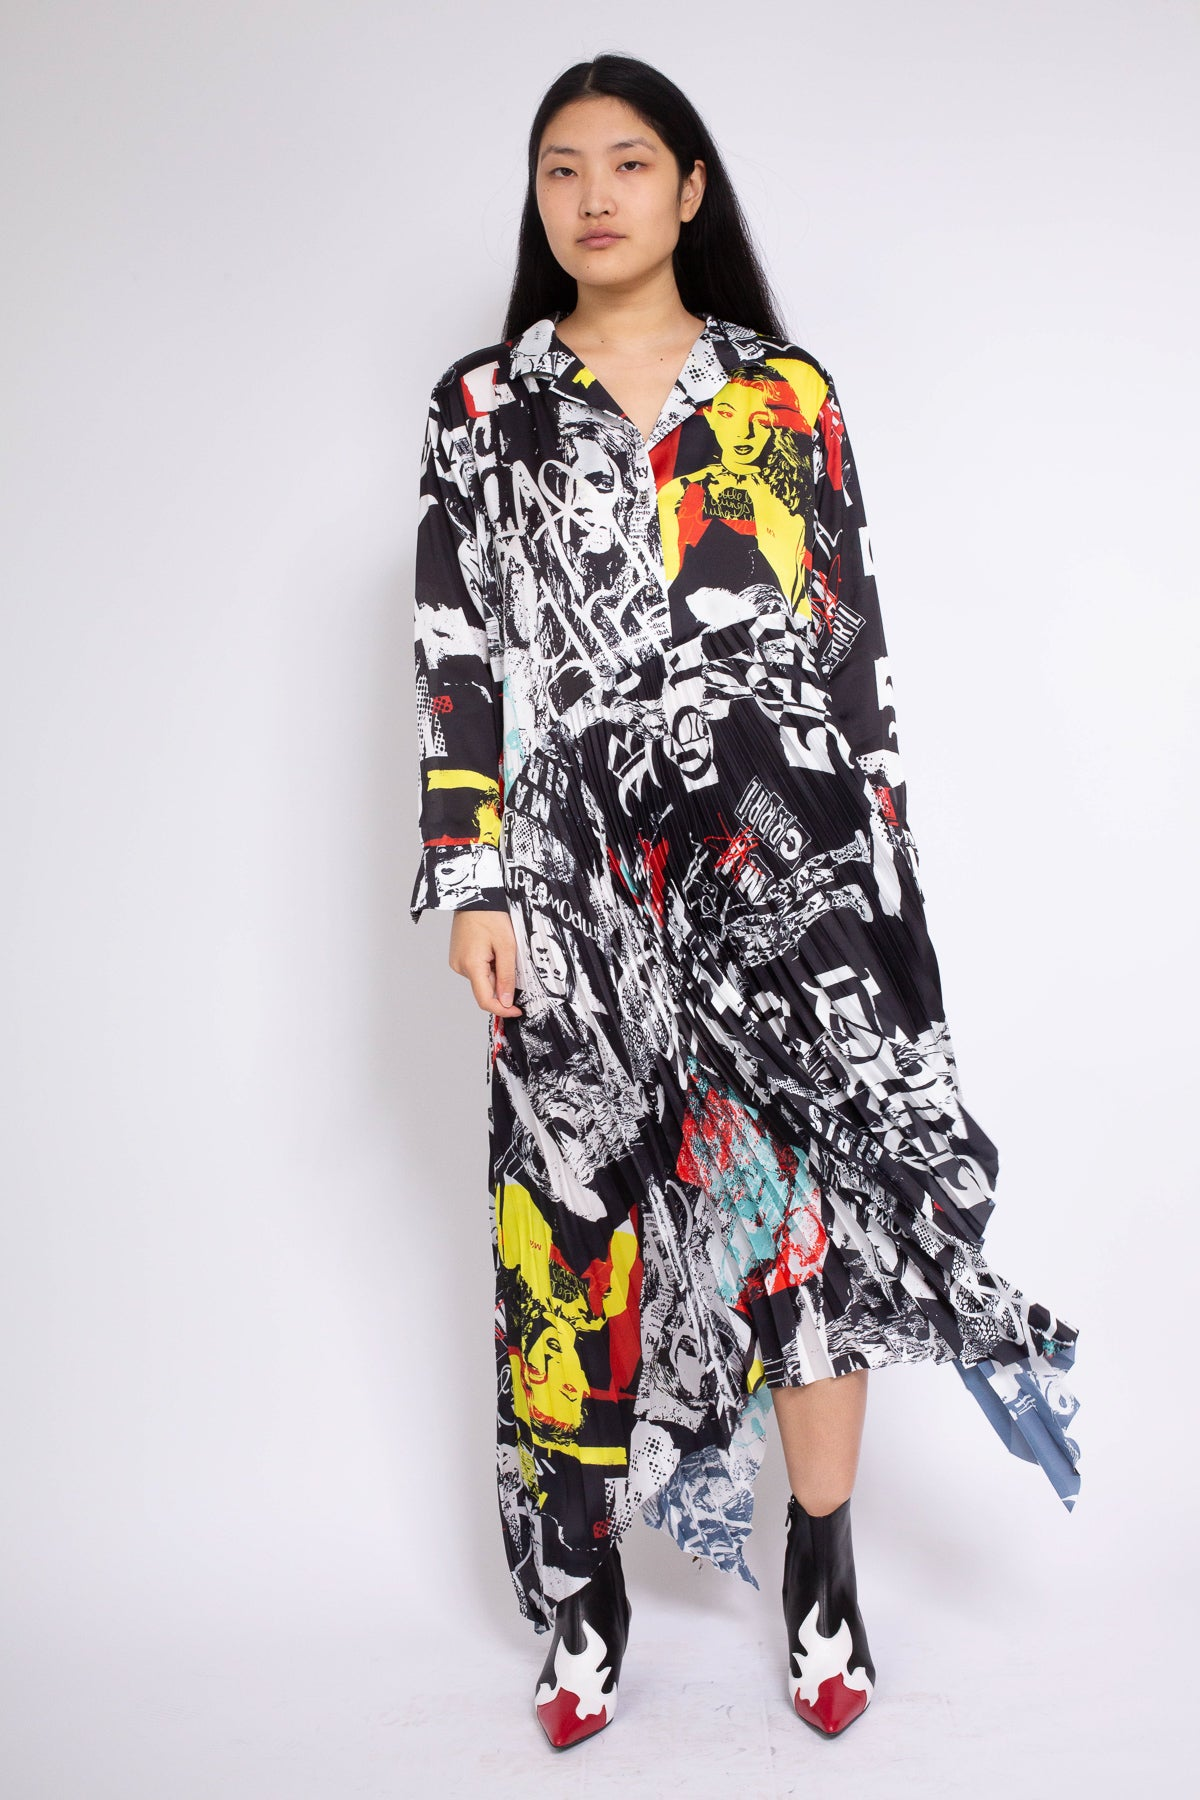 PLEATED MAXI SHIRT DRESS IN M'A RIOT GRRRL PRINT - marques-almeida-dev